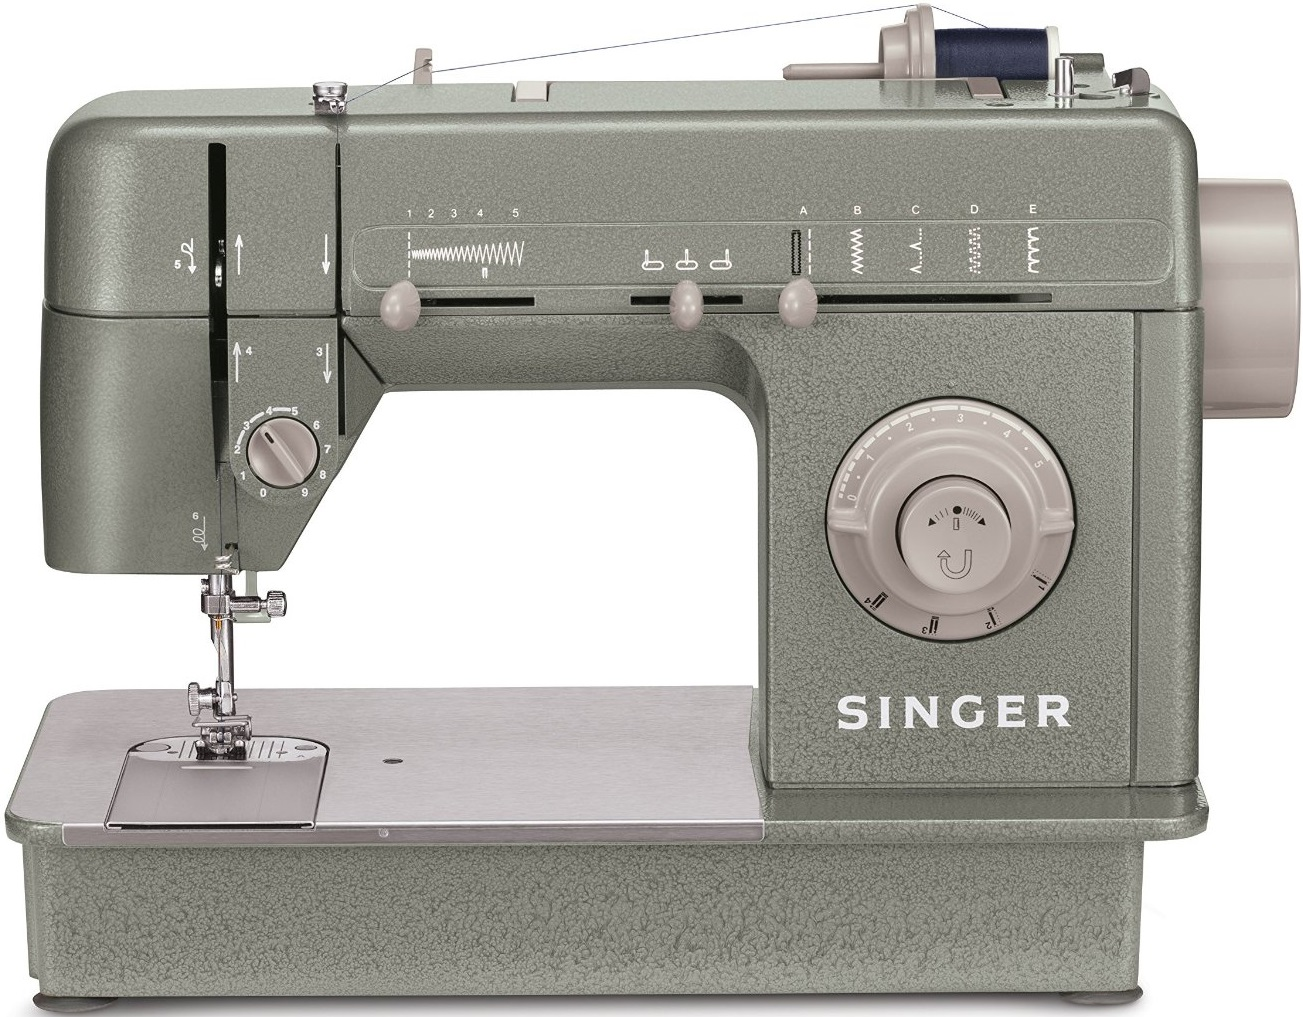 Best Heavy Duty Sewing Machines for Denim And Jeans ...